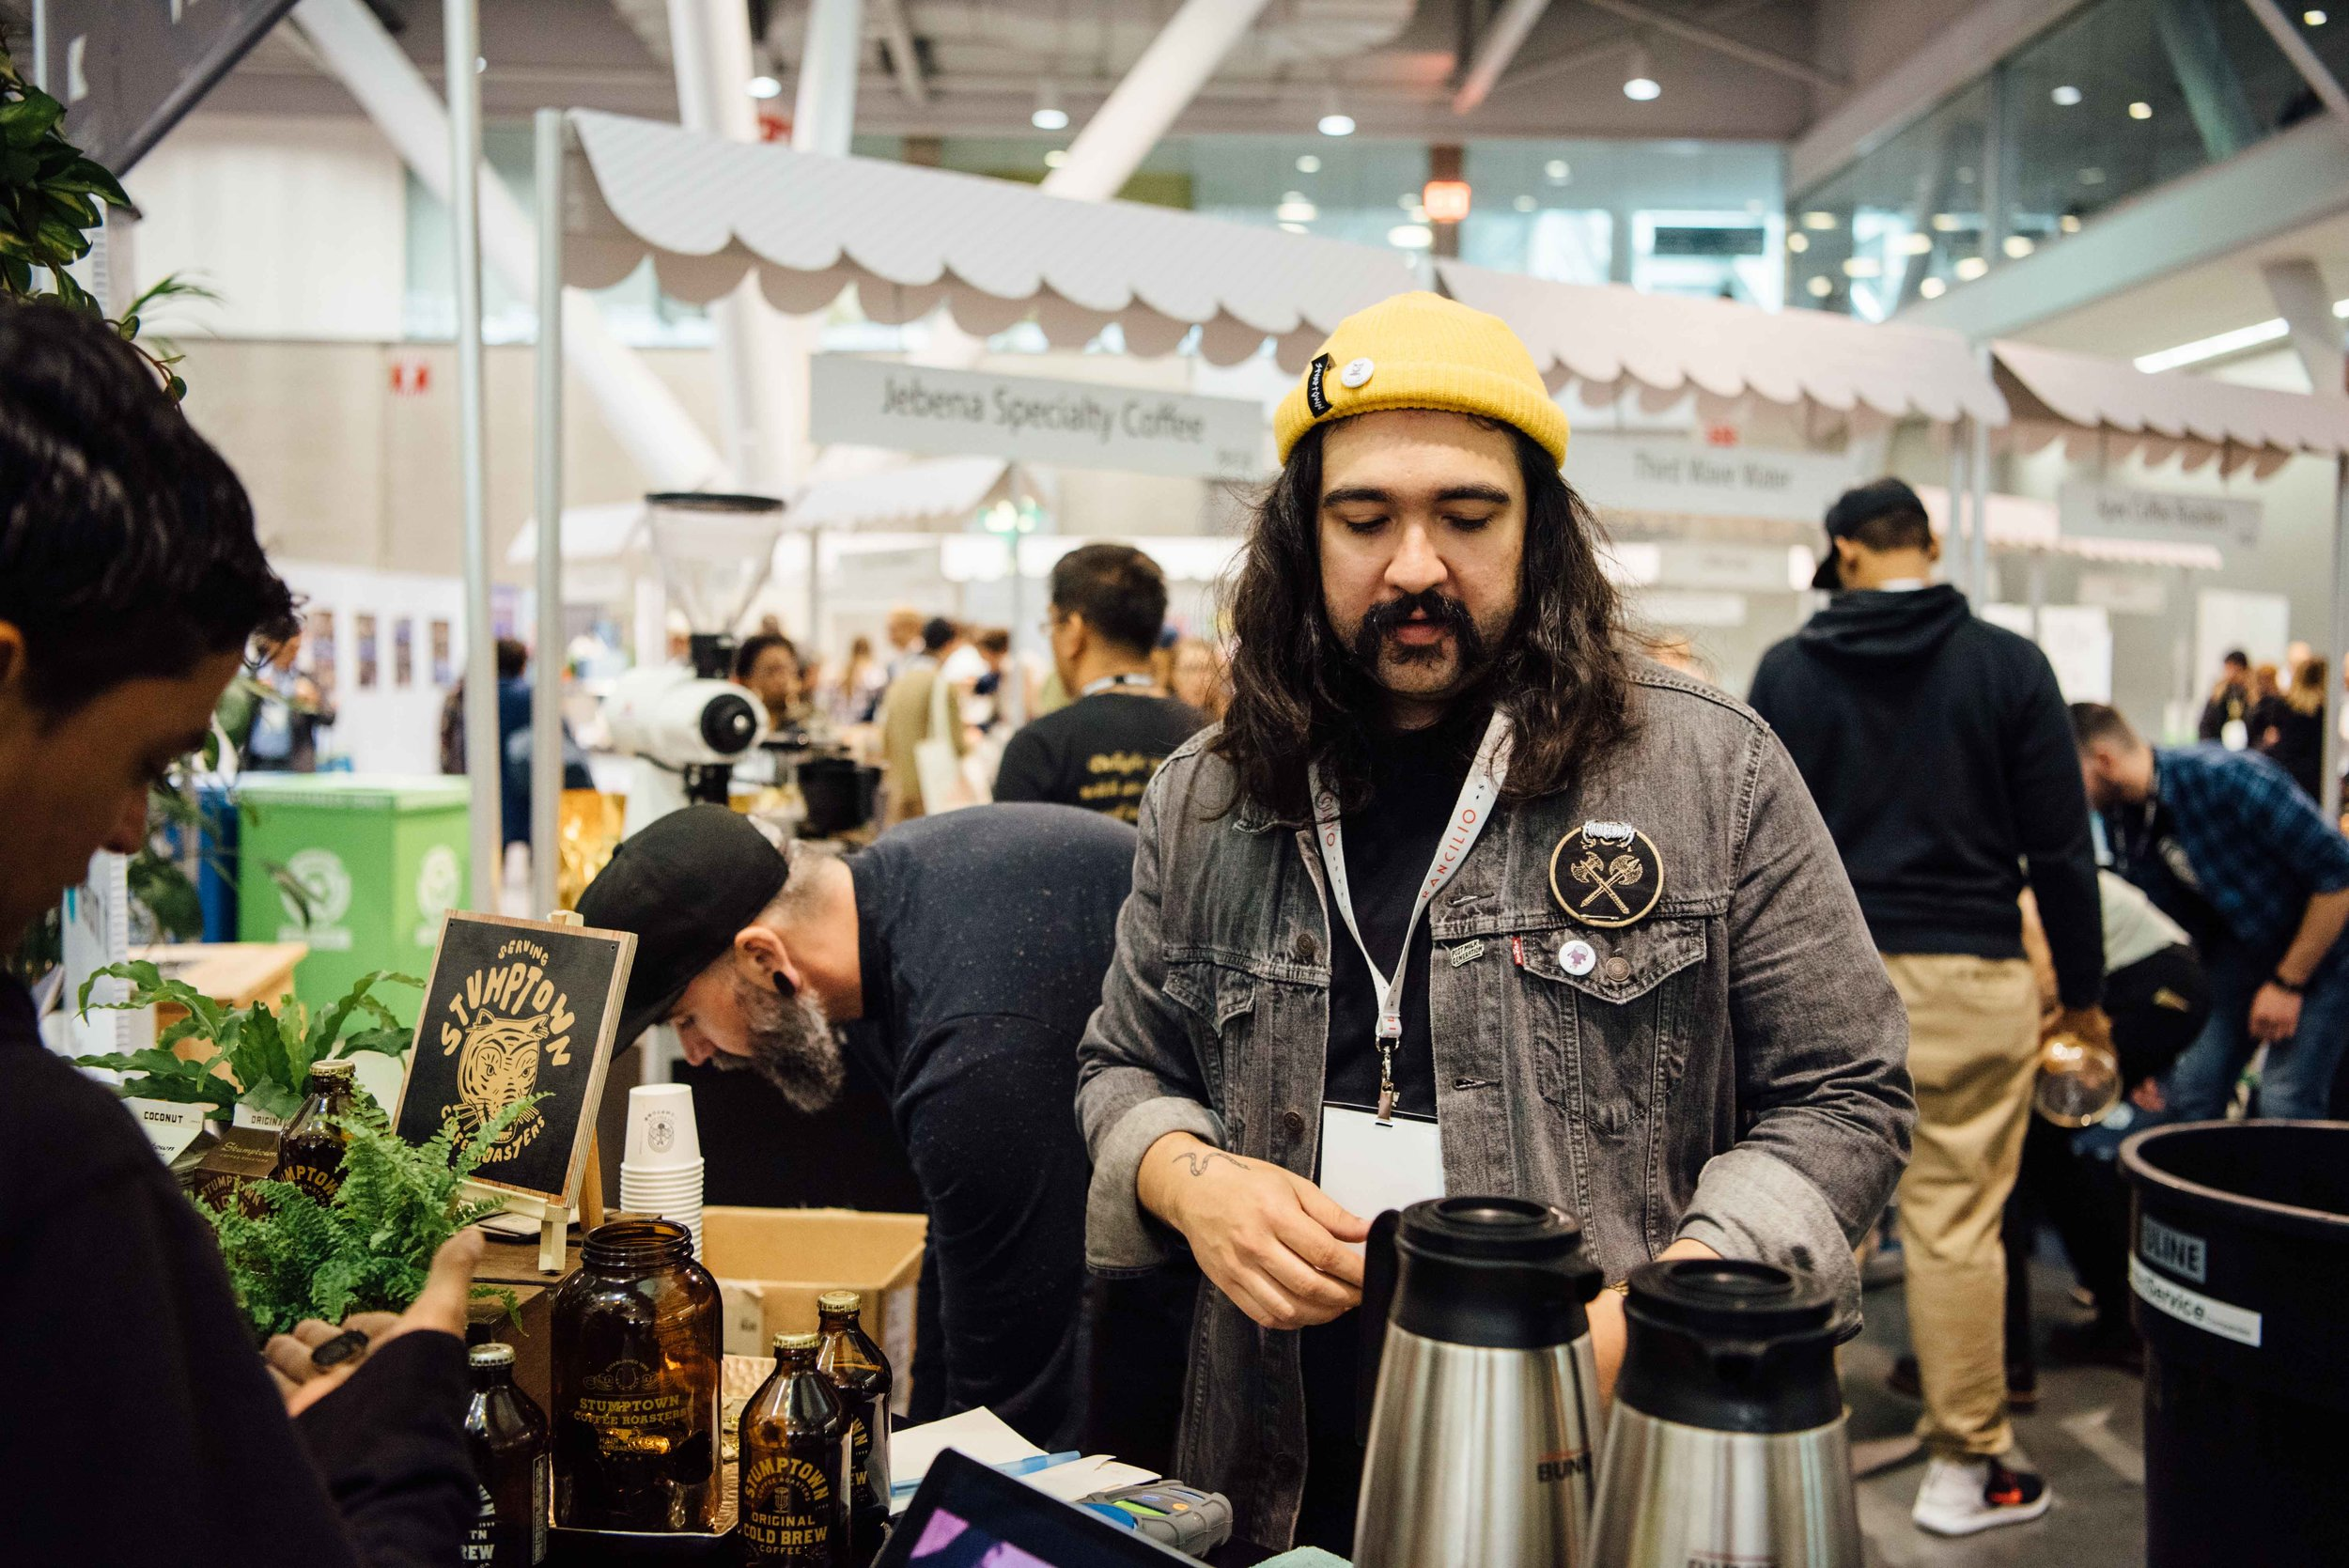 Roaster Village - Explore and taste coffees produced and roasted by some of the best roasters in the industry.